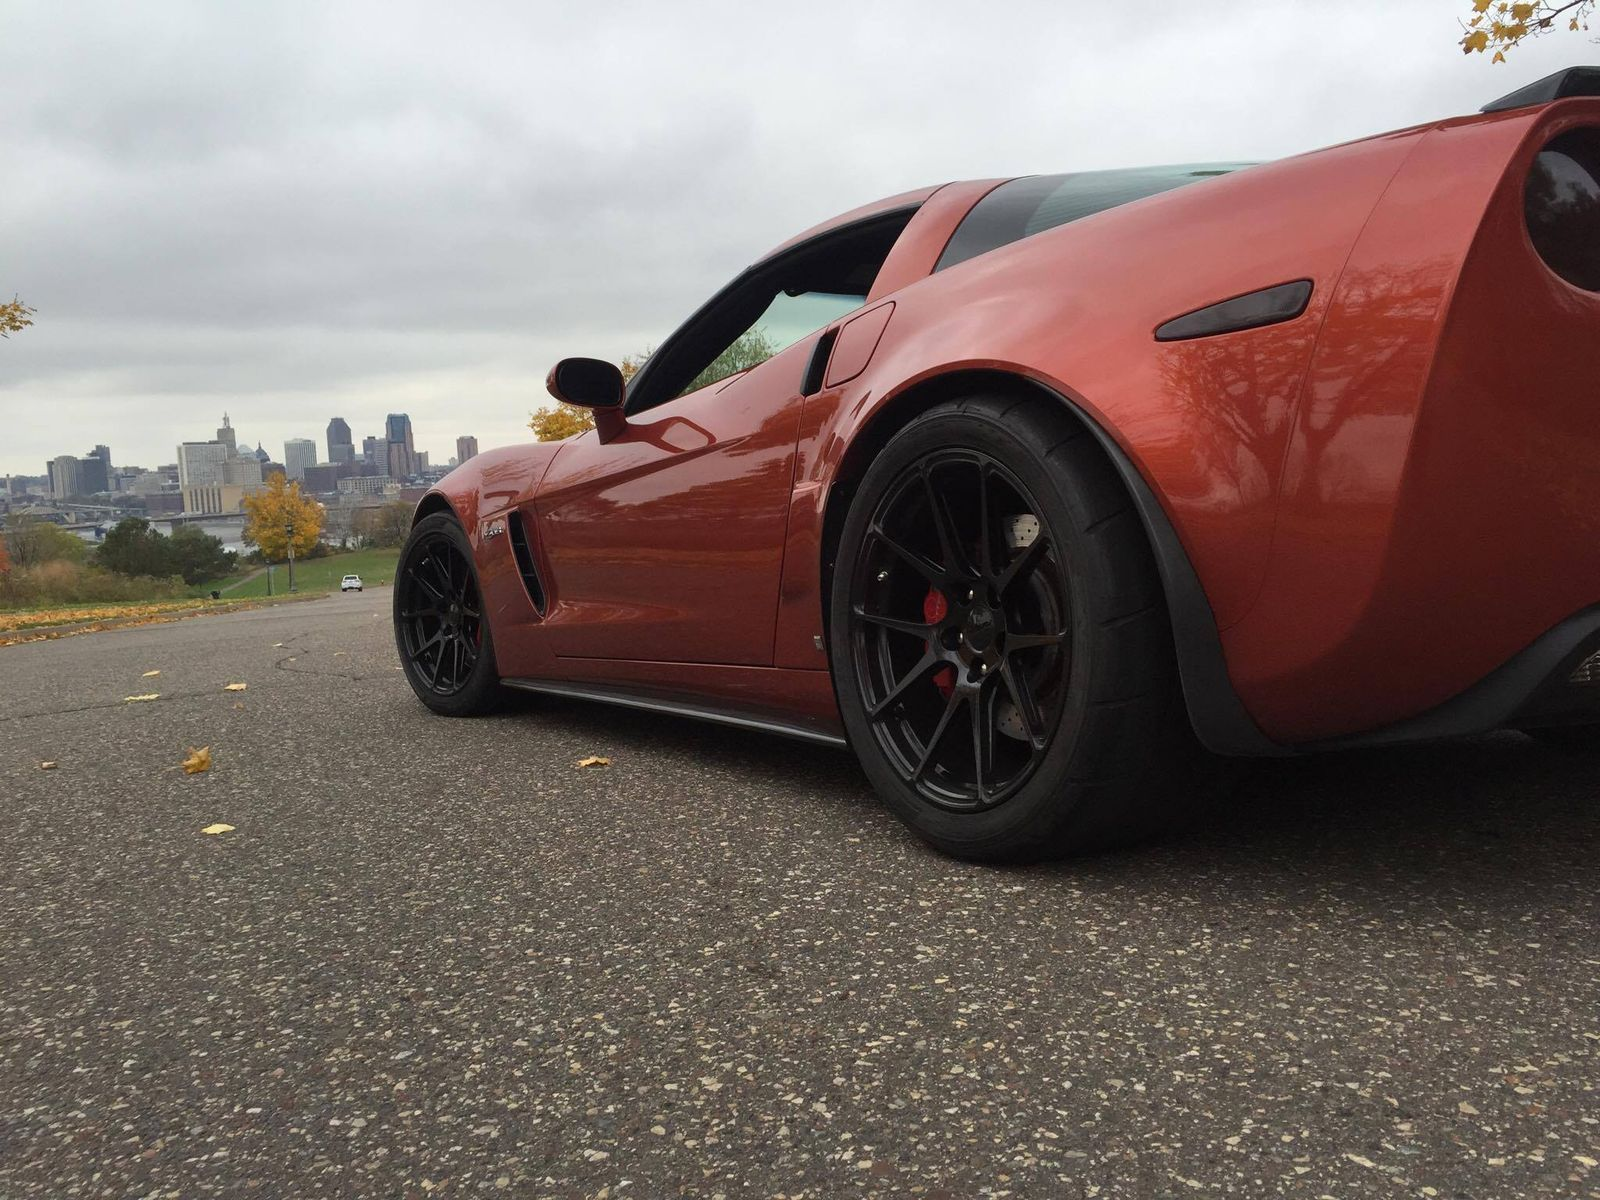 2006 Chevrolet Corvette | Joe Garofalo's C6 Corvette Z06 on Forgeline One Piece Forged Monoblock GA1R Wheels